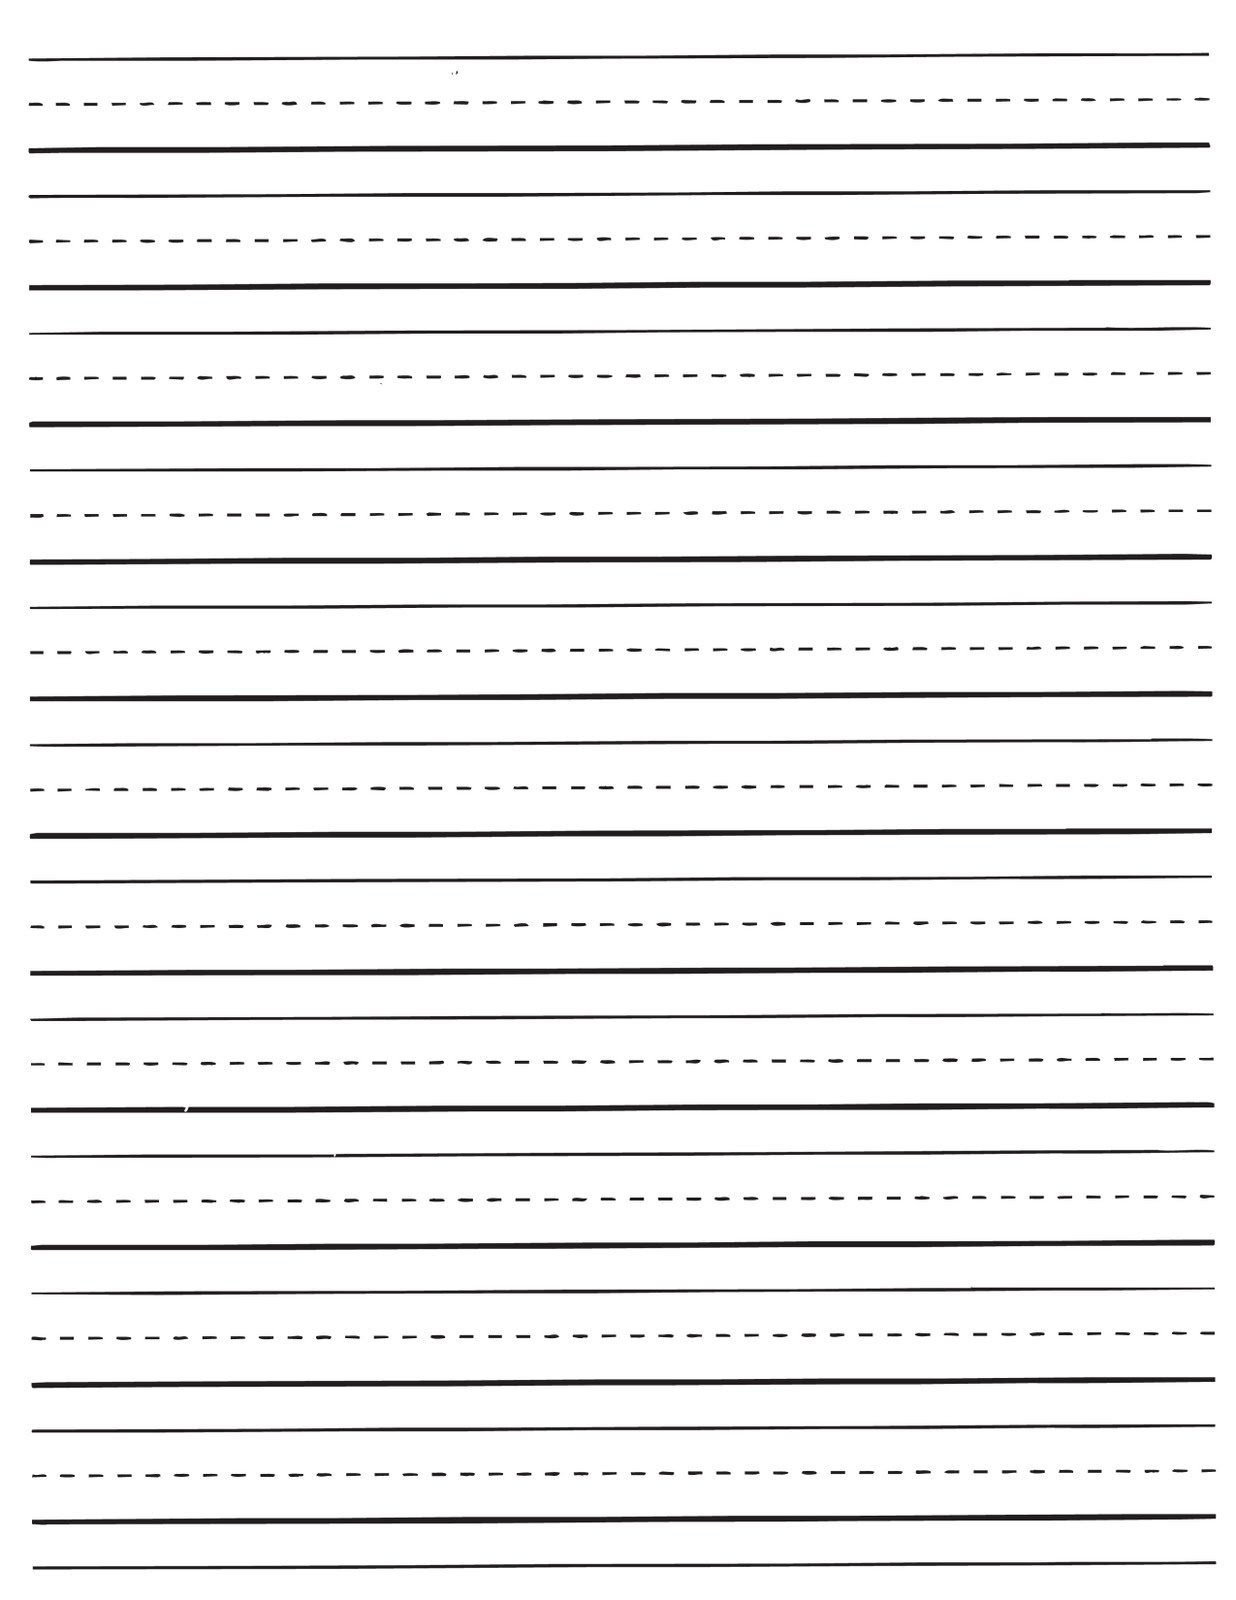 Printable Lined Paper For Kids | World Of Label - Free Printable Lined Handwriting Paper